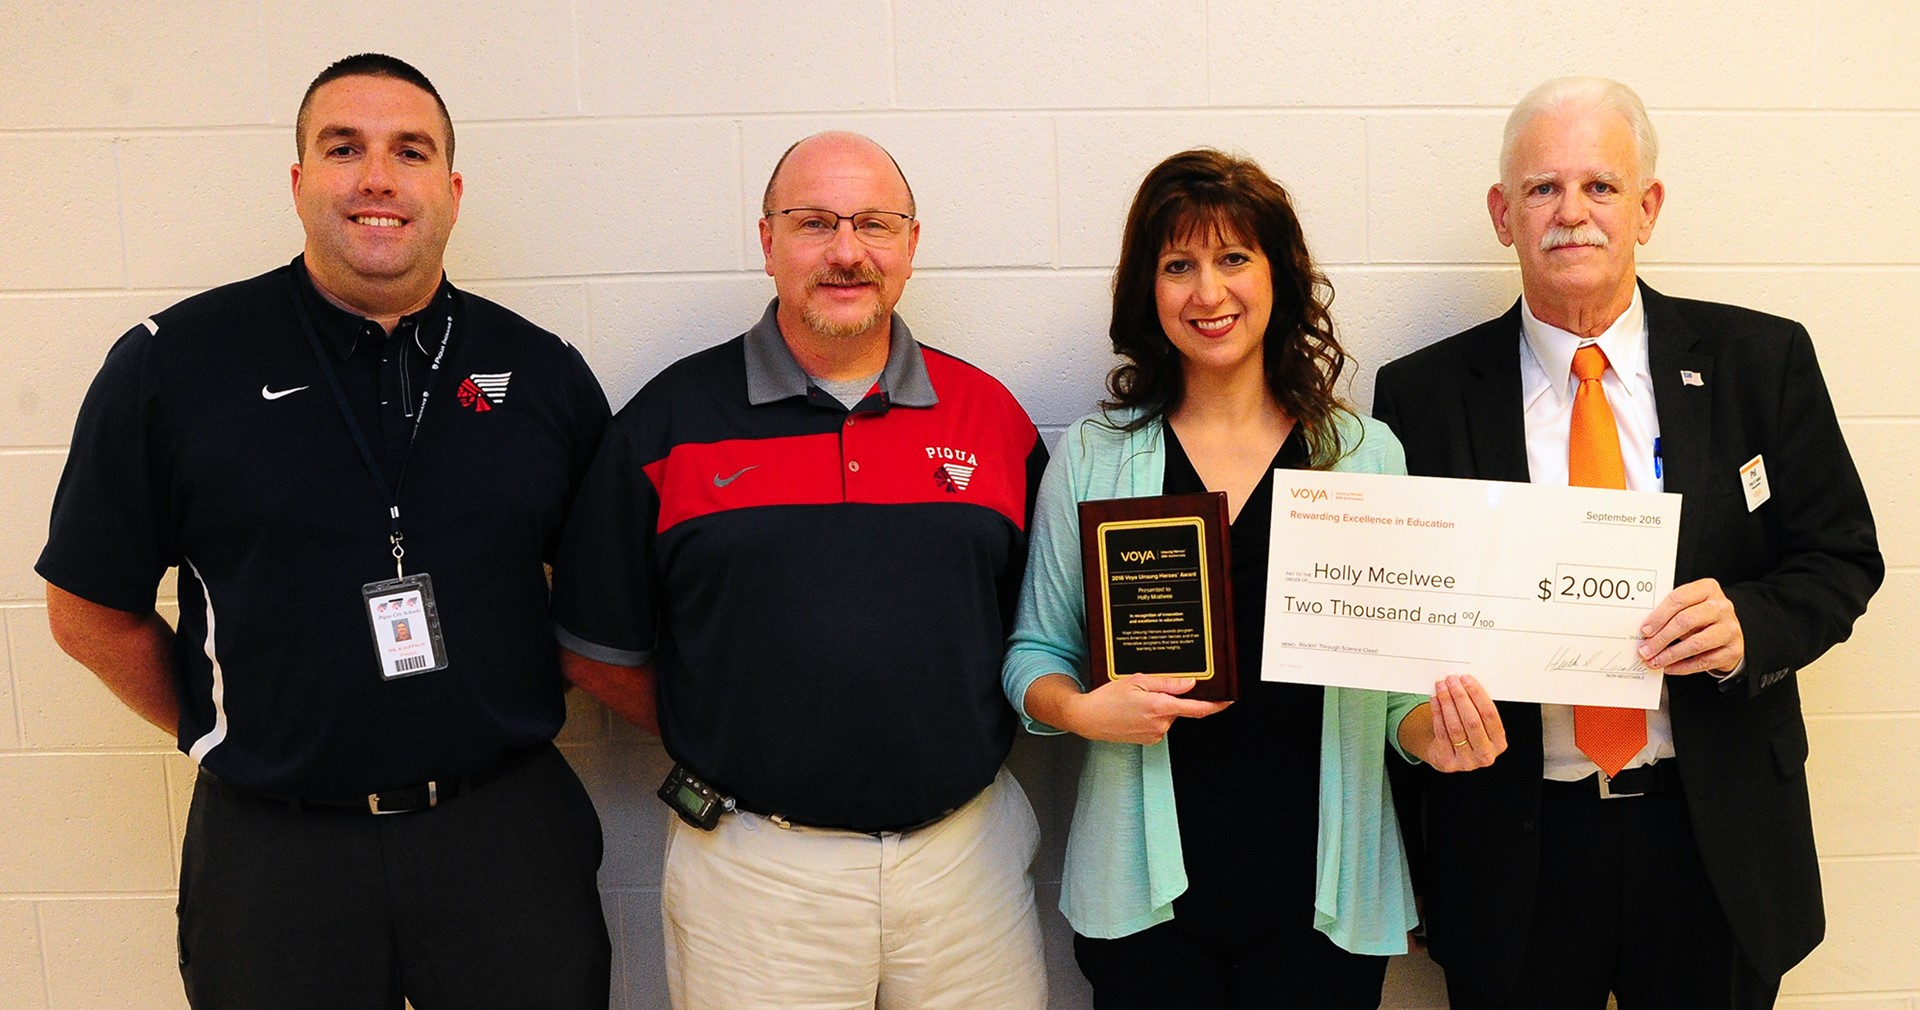 Mrs. McElwee receives National grant